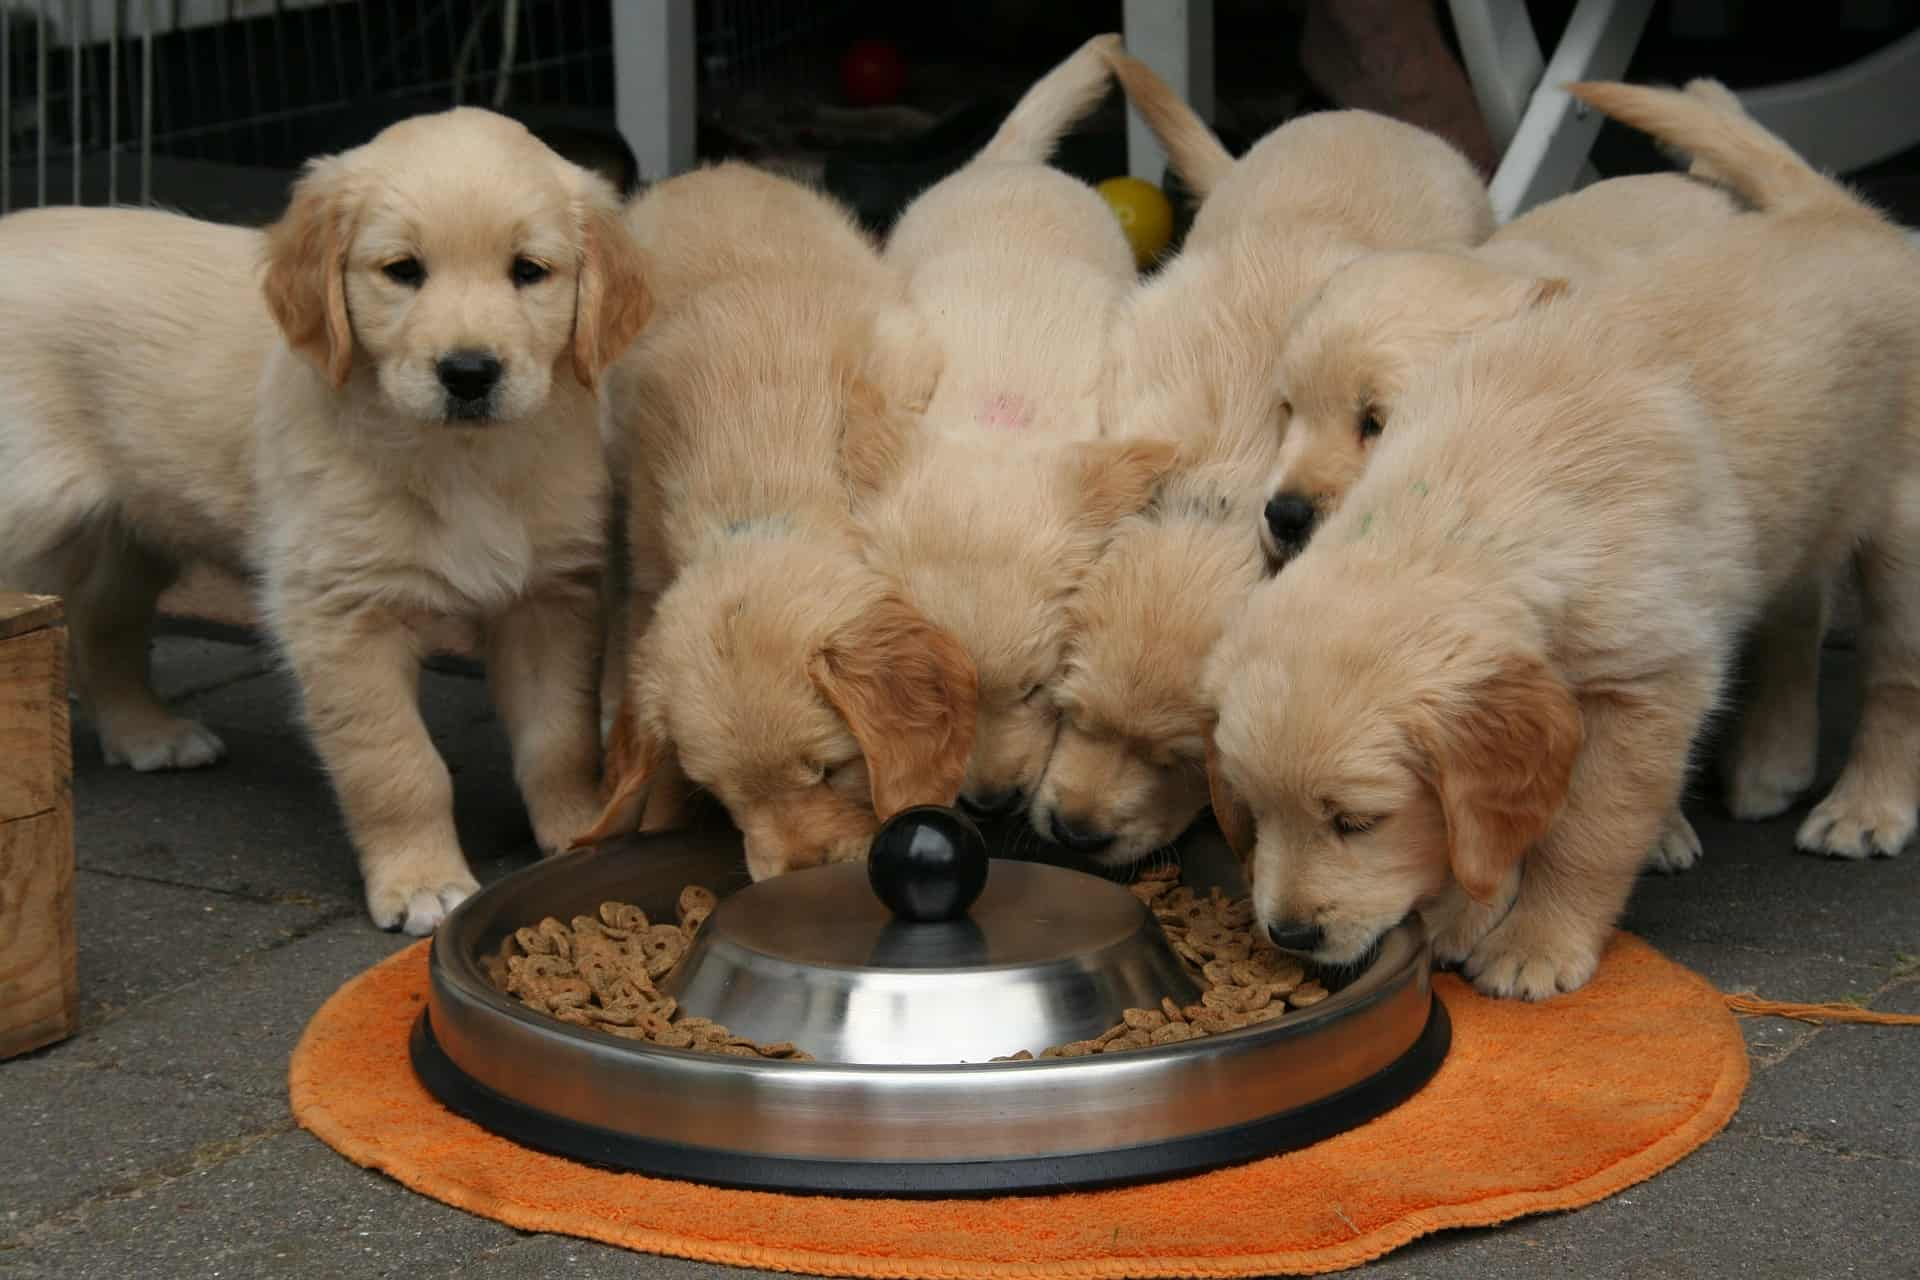 Image of puppies feeding in a metal feeder.